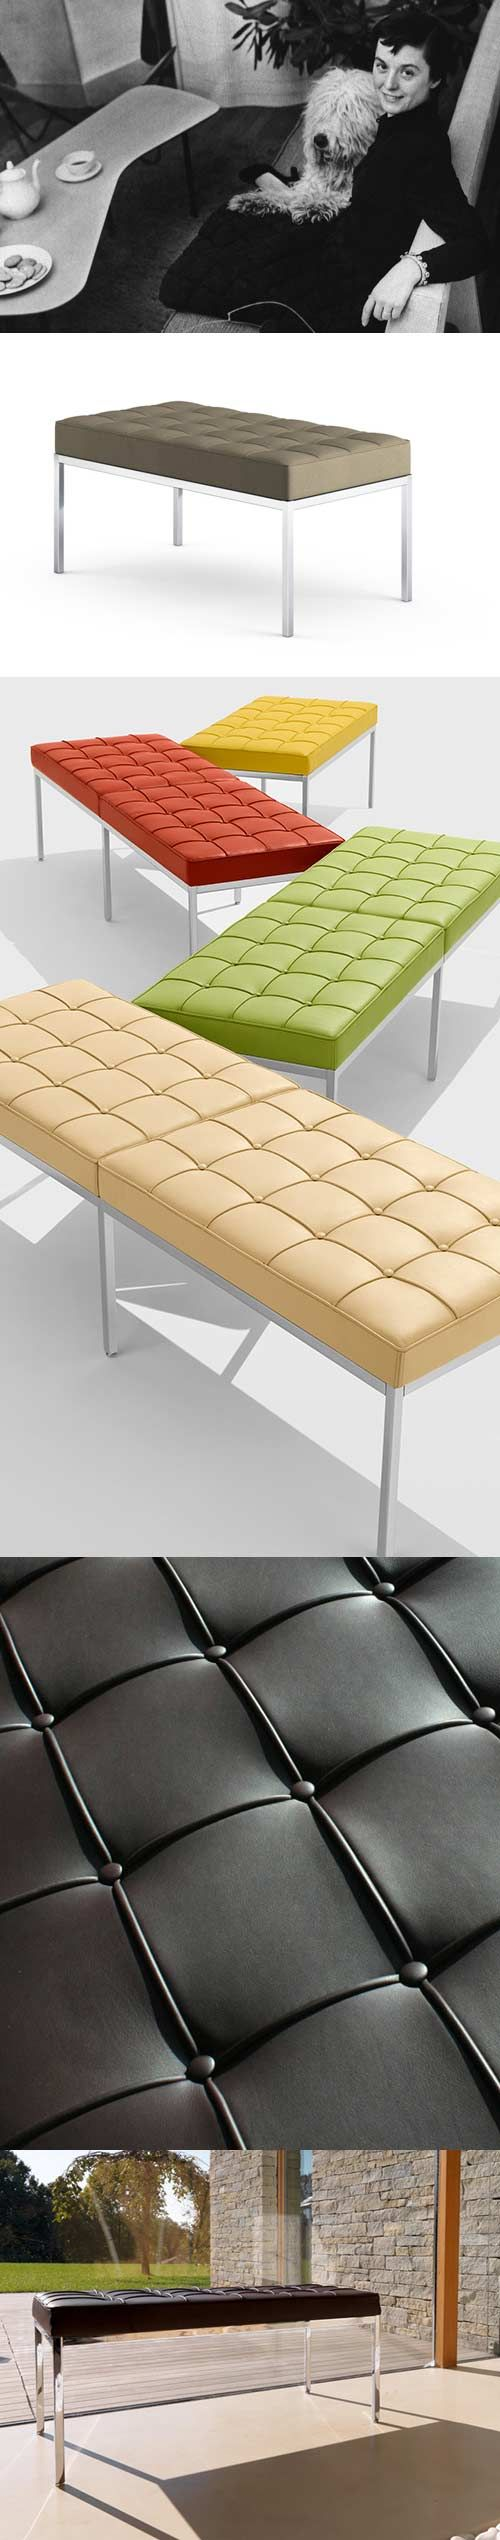 Florence Knoll Bench -1954 Consistent with all of her designs, Florence Knoll's Bench has a spare, geometric profile that reflects the rational design approach Florence learned from her mentor, Mies van der Rohe. #style and #design by #Knoll - http://www.knoll.com/product/florence-knoll-bench